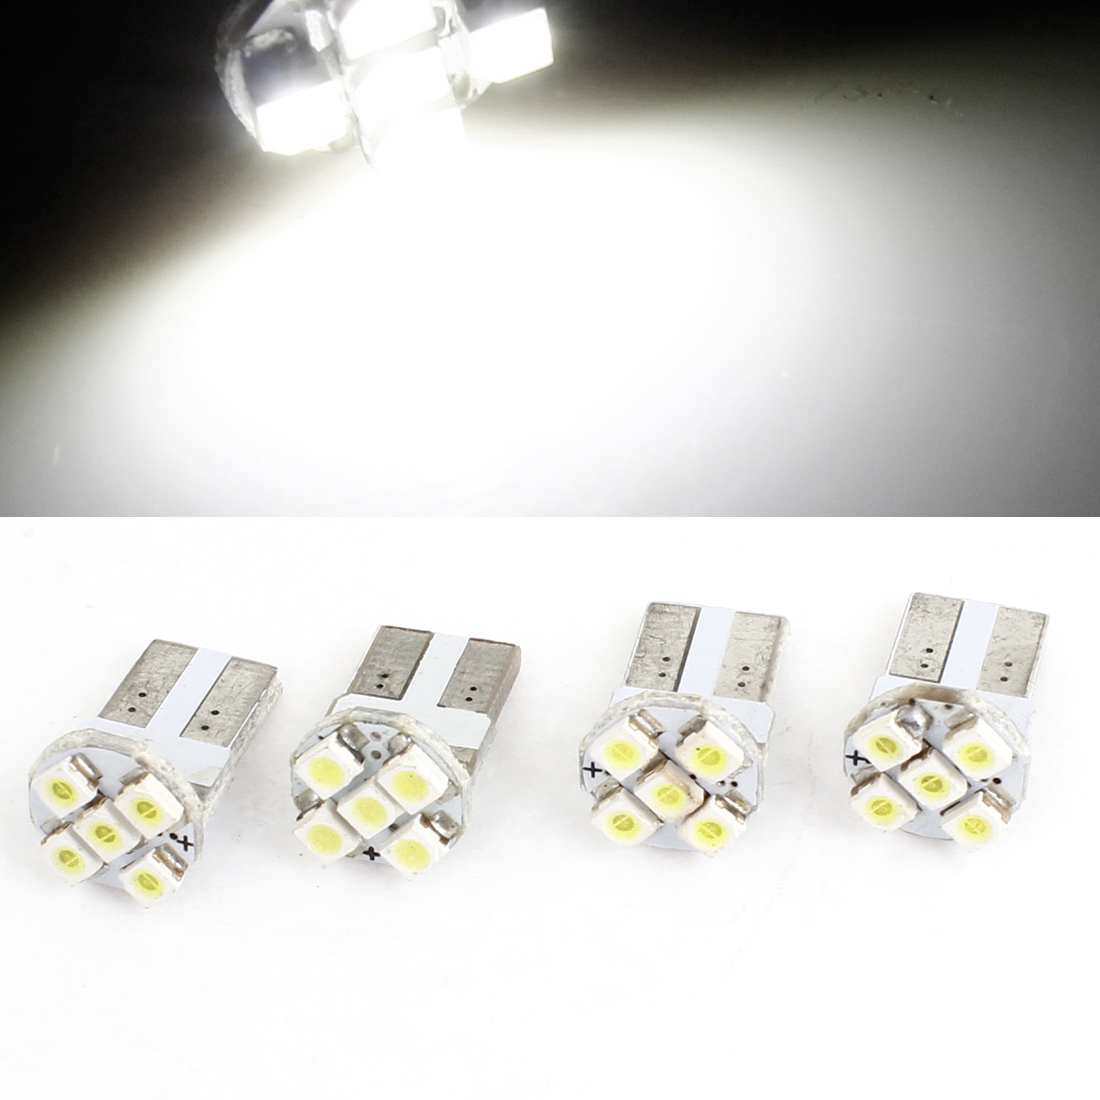 Vehicle Car White 5 LED 1210 3528 SMD Dash Dome Light Lamp Bulb 4pcs T10